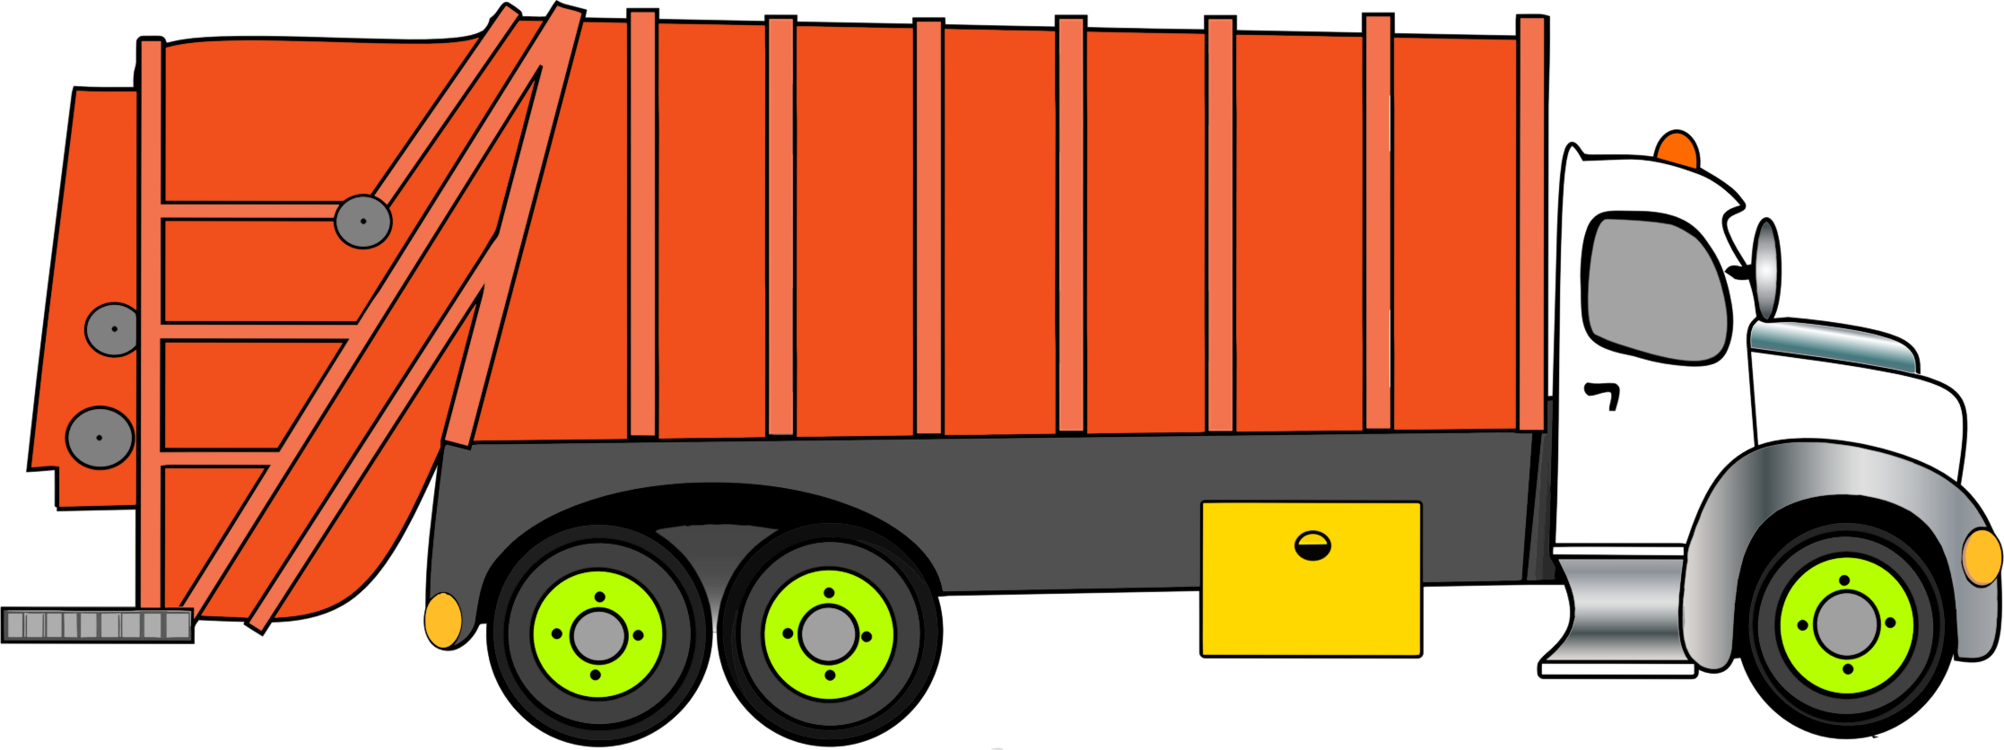 Cargo,Freight Transport,Car